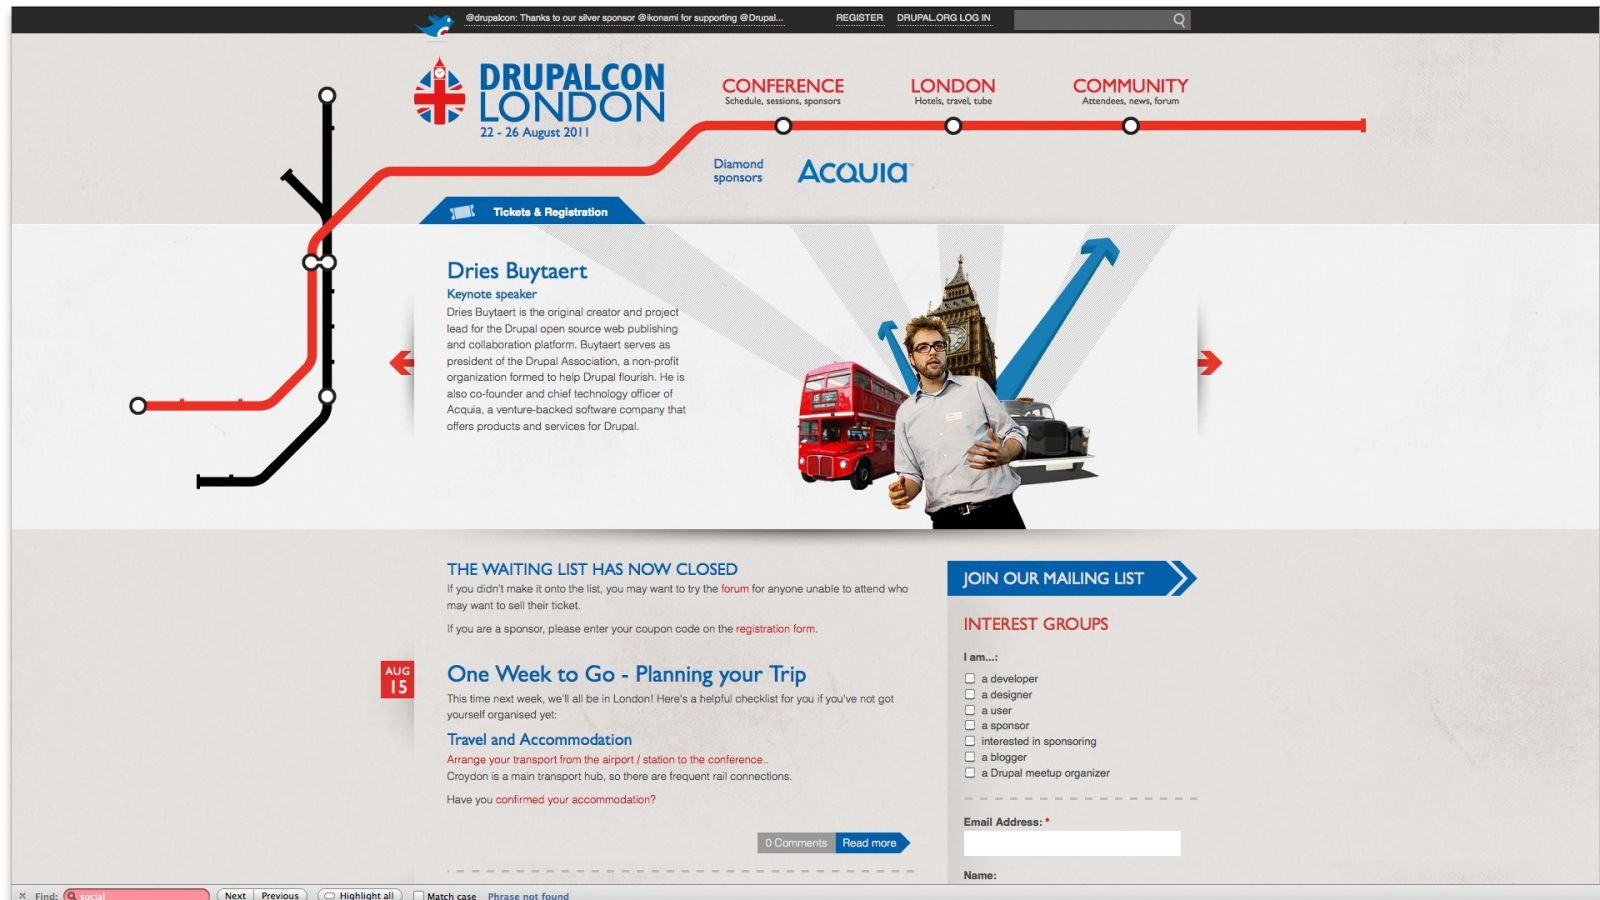 Drupal comes to town: DrupalCon London features a ton of sessions, talks and workshops